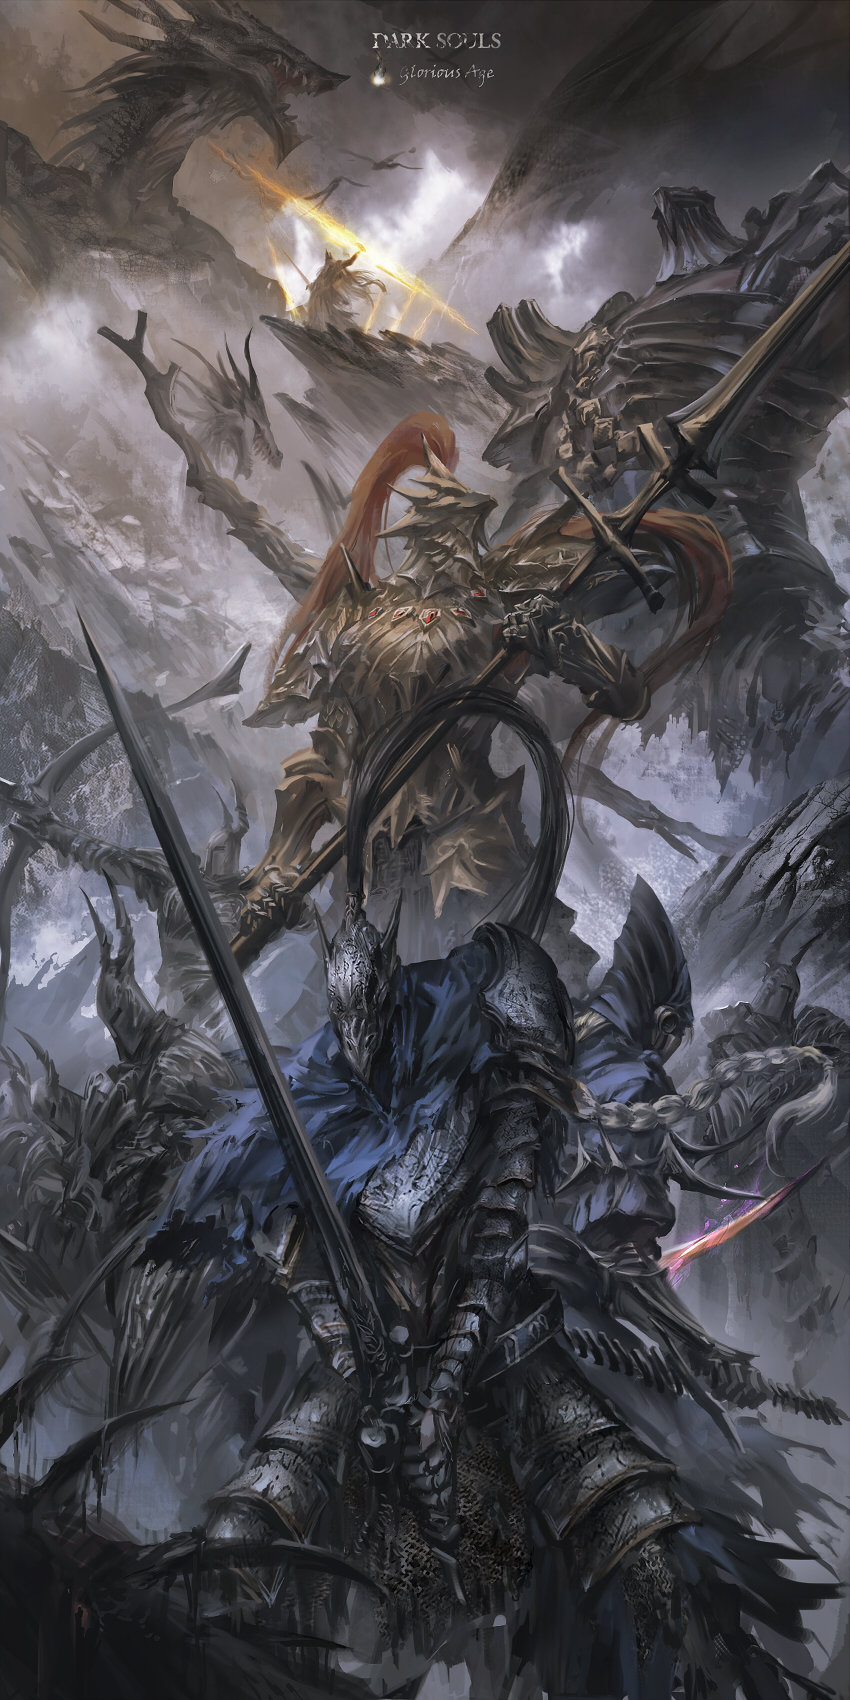 General 850x1700 fantasy art artwork Dark Souls video game art Artorias the Abysswalker Dragon Slayer Ornstein